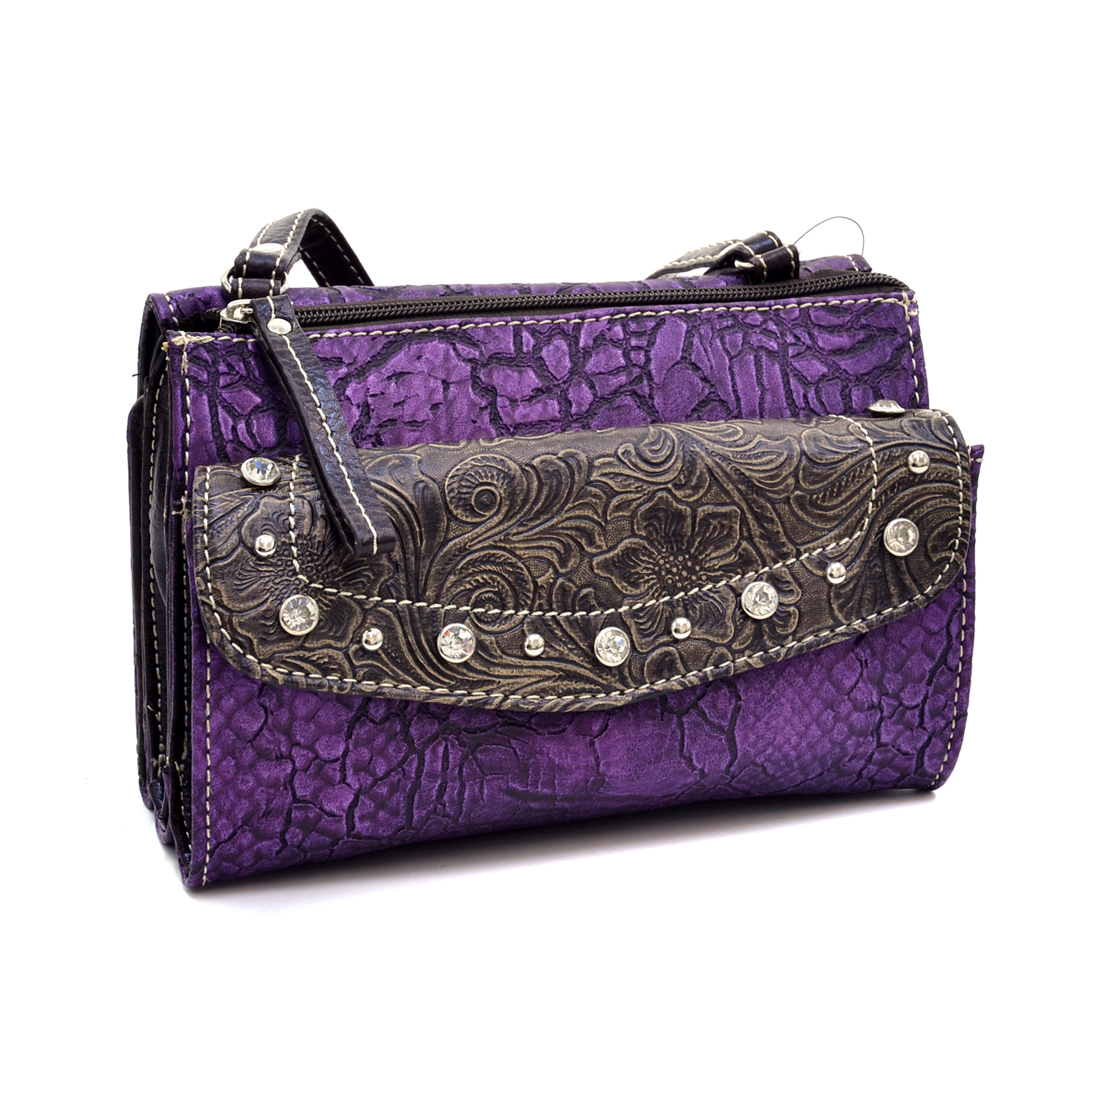 Western Crossbody Organizer With Wallet Compartment